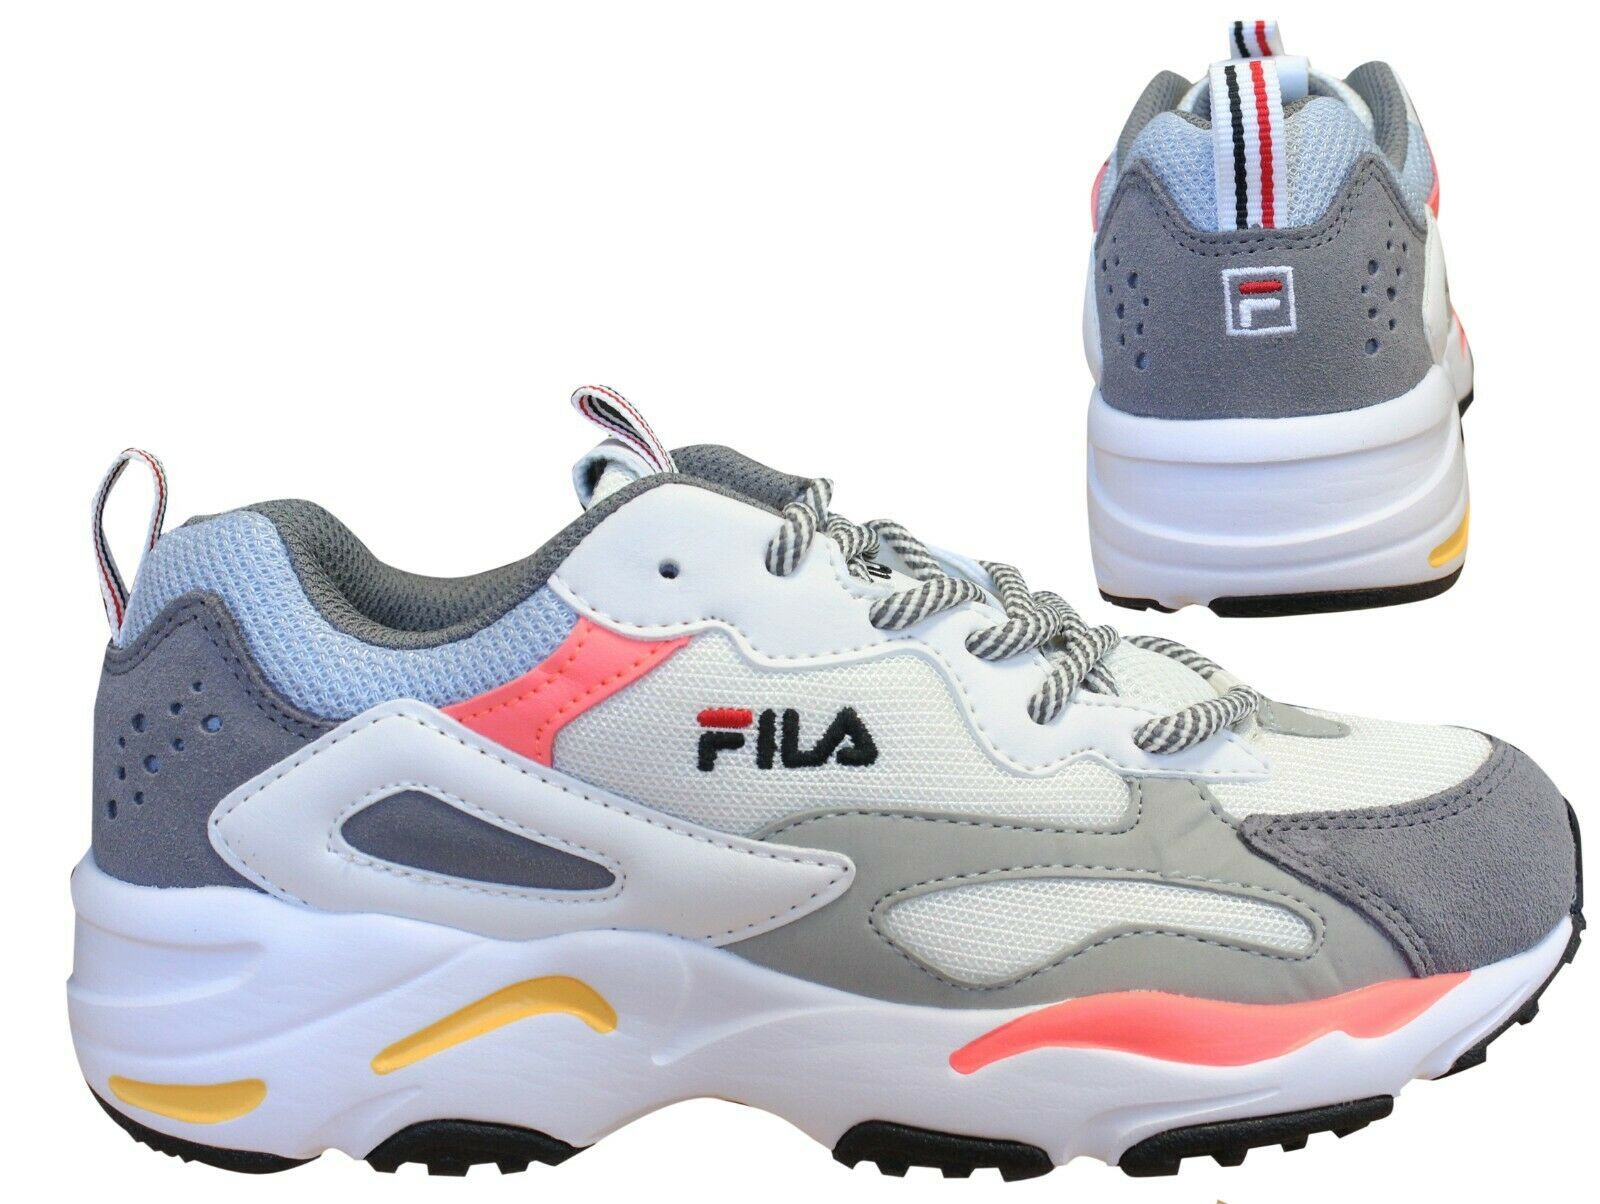 Details about Fila Ray Tracer Lace Up Casual Womens Sports Trainers Grey 1010686 91K X9B